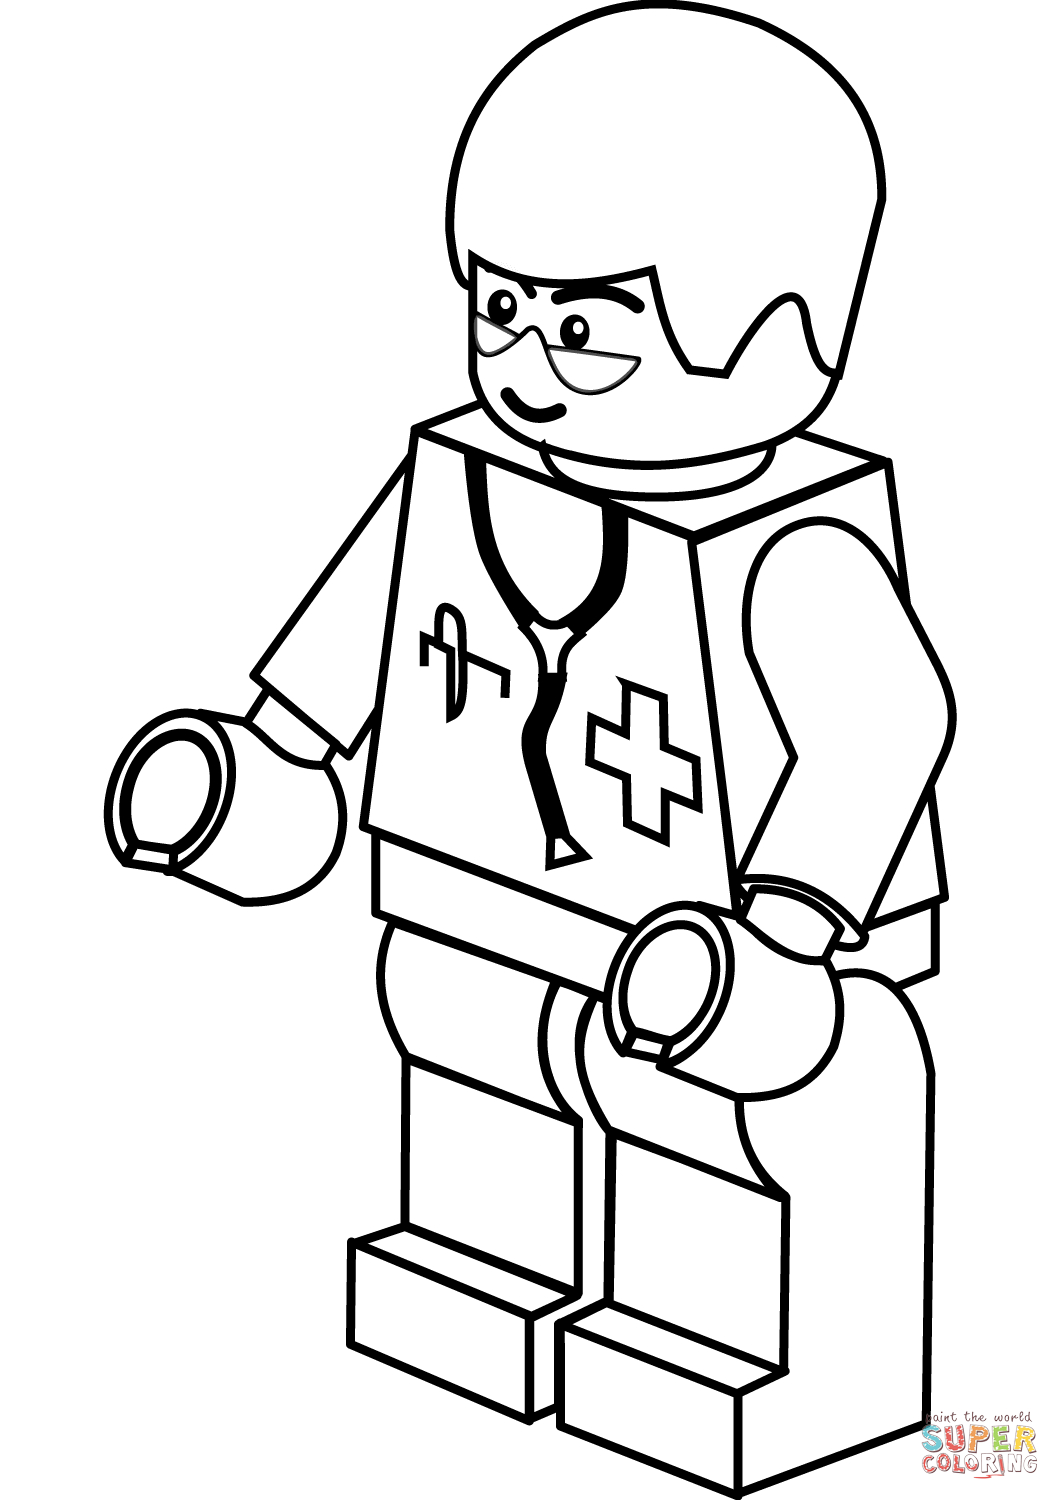 Lego Doctor Coloring Page | Free Printable Coloring Pages | Lego - Doctor Coloring Pages Free Printable